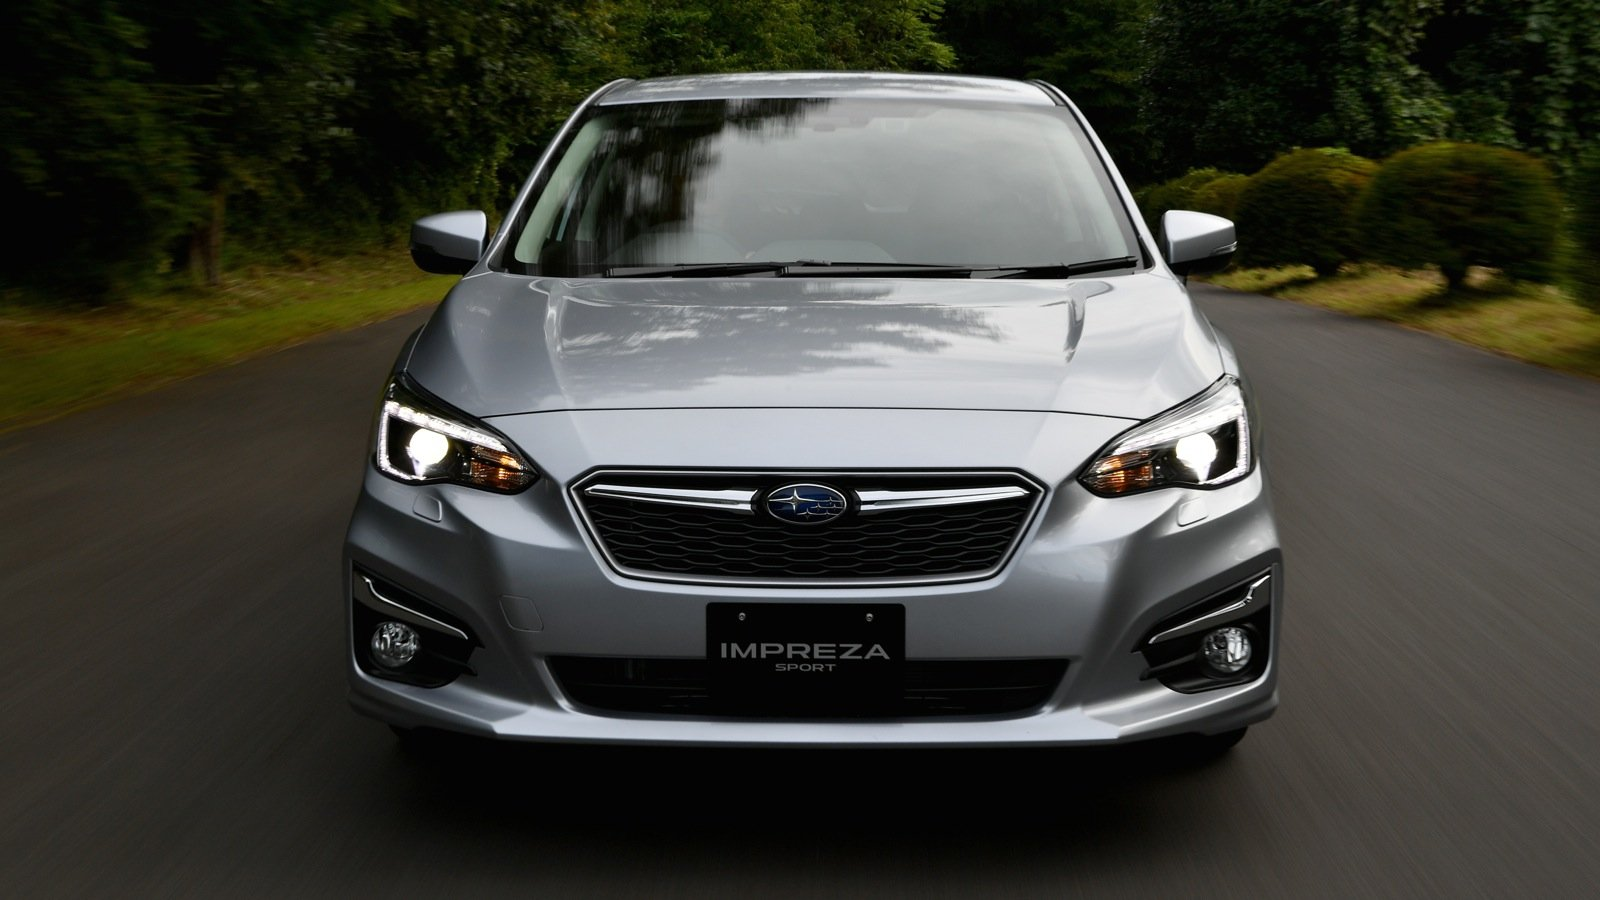 2017 Subaru Impreza Review - photos | CarAdvice